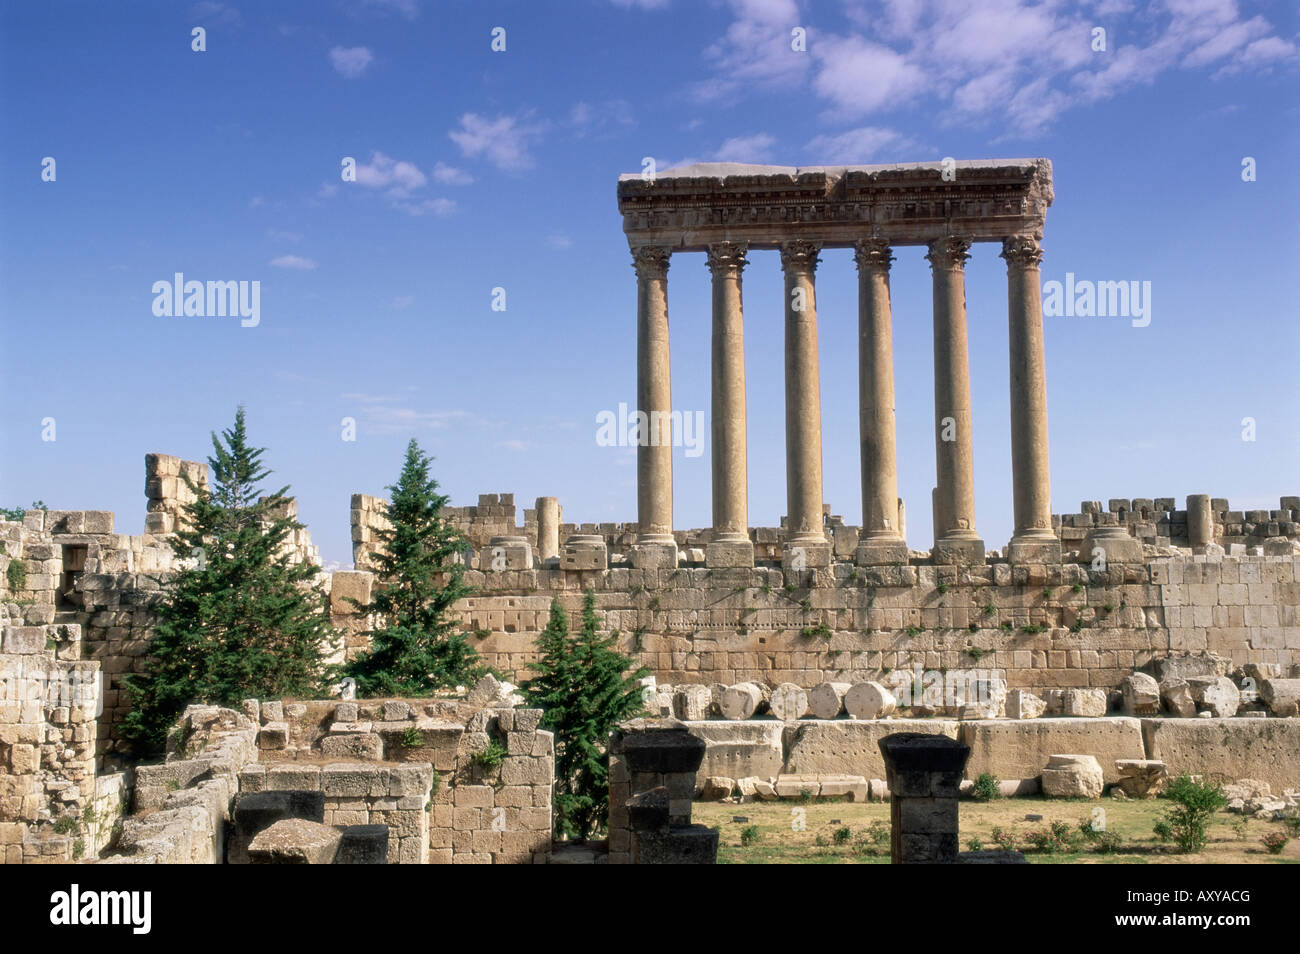 Temple romain de Jupiter, Baalbek, site archéologique, site du patrimoine mondial de l'UNESCO, vallée Photo Stock